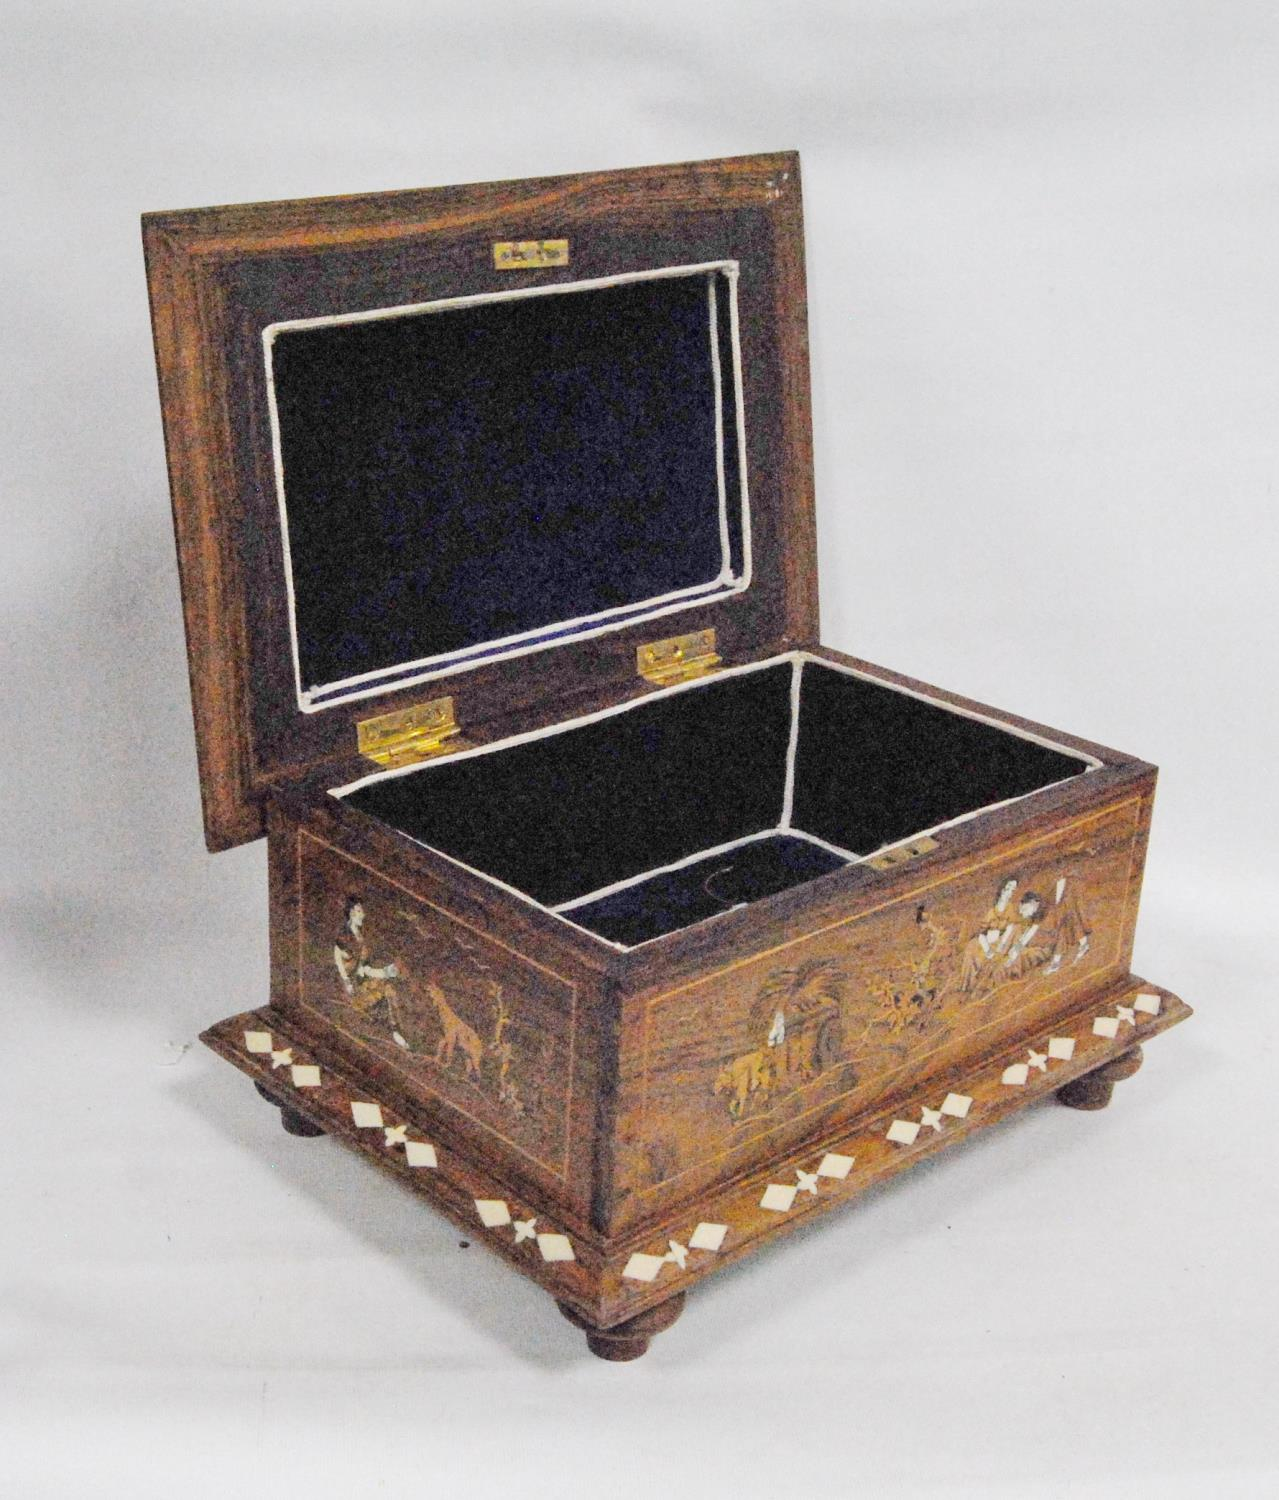 Inlaid rosewood casket-shaped box decorated with a rural scene, with hinged rectangular lid and - Image 5 of 5